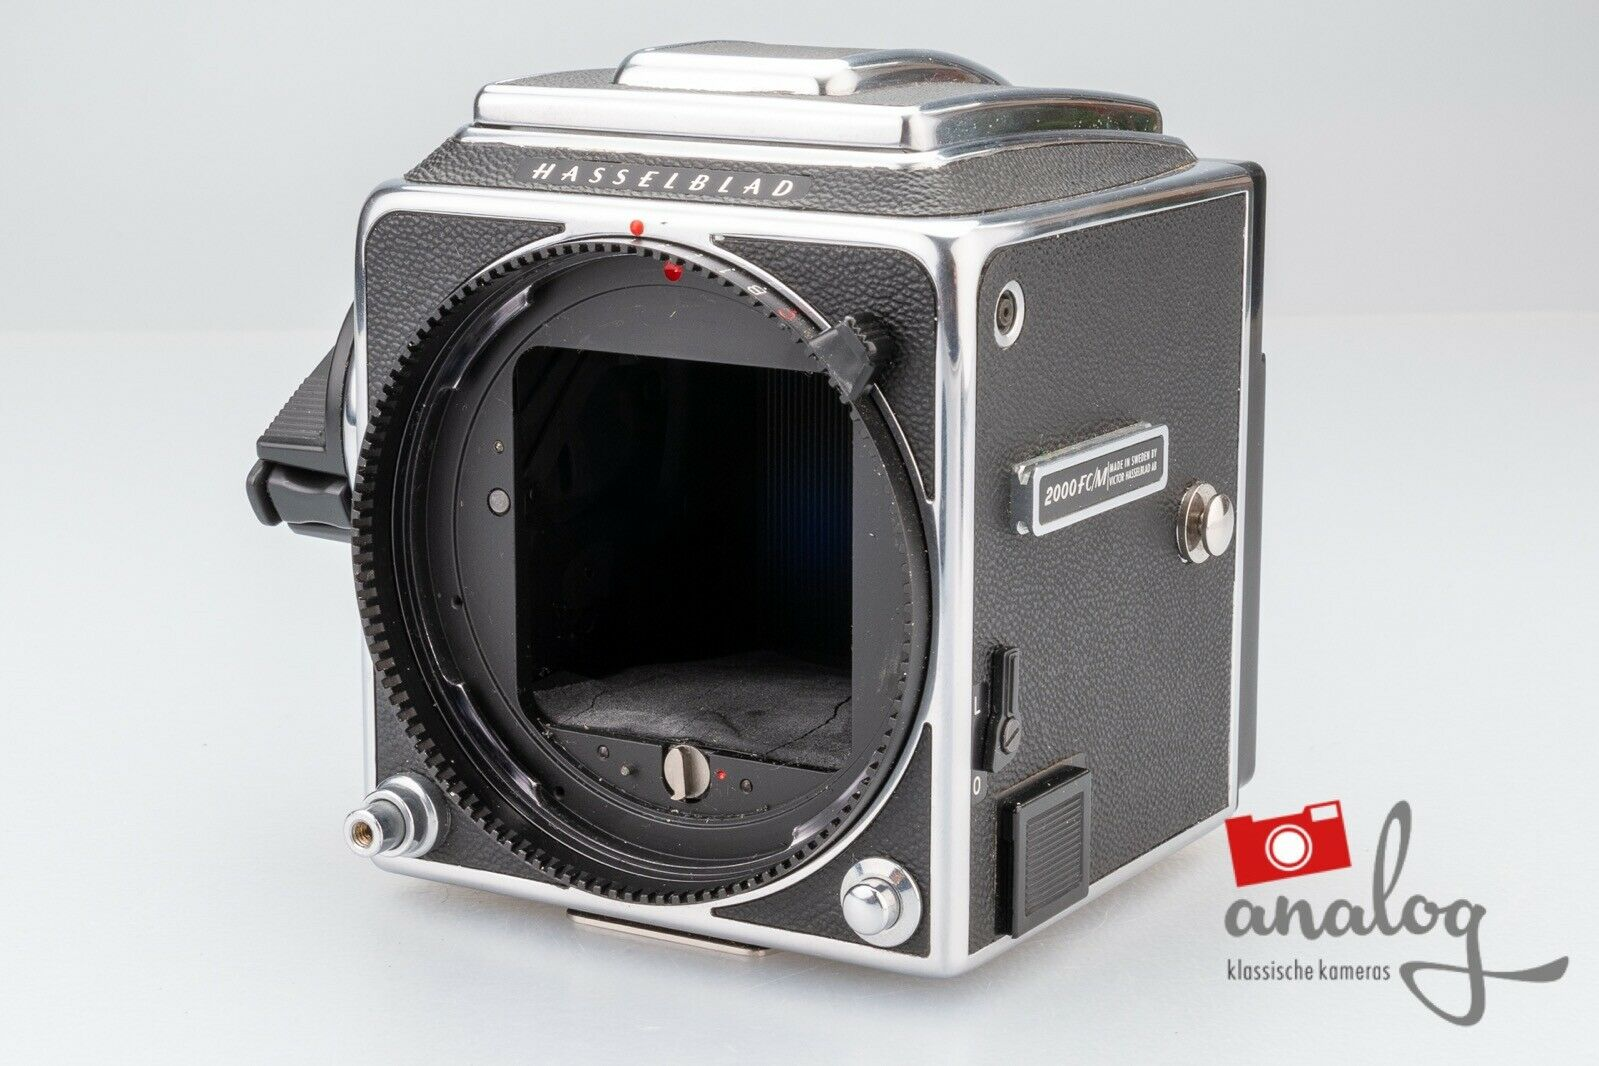 Hasselblad 2000 FC/M chrome - 10316